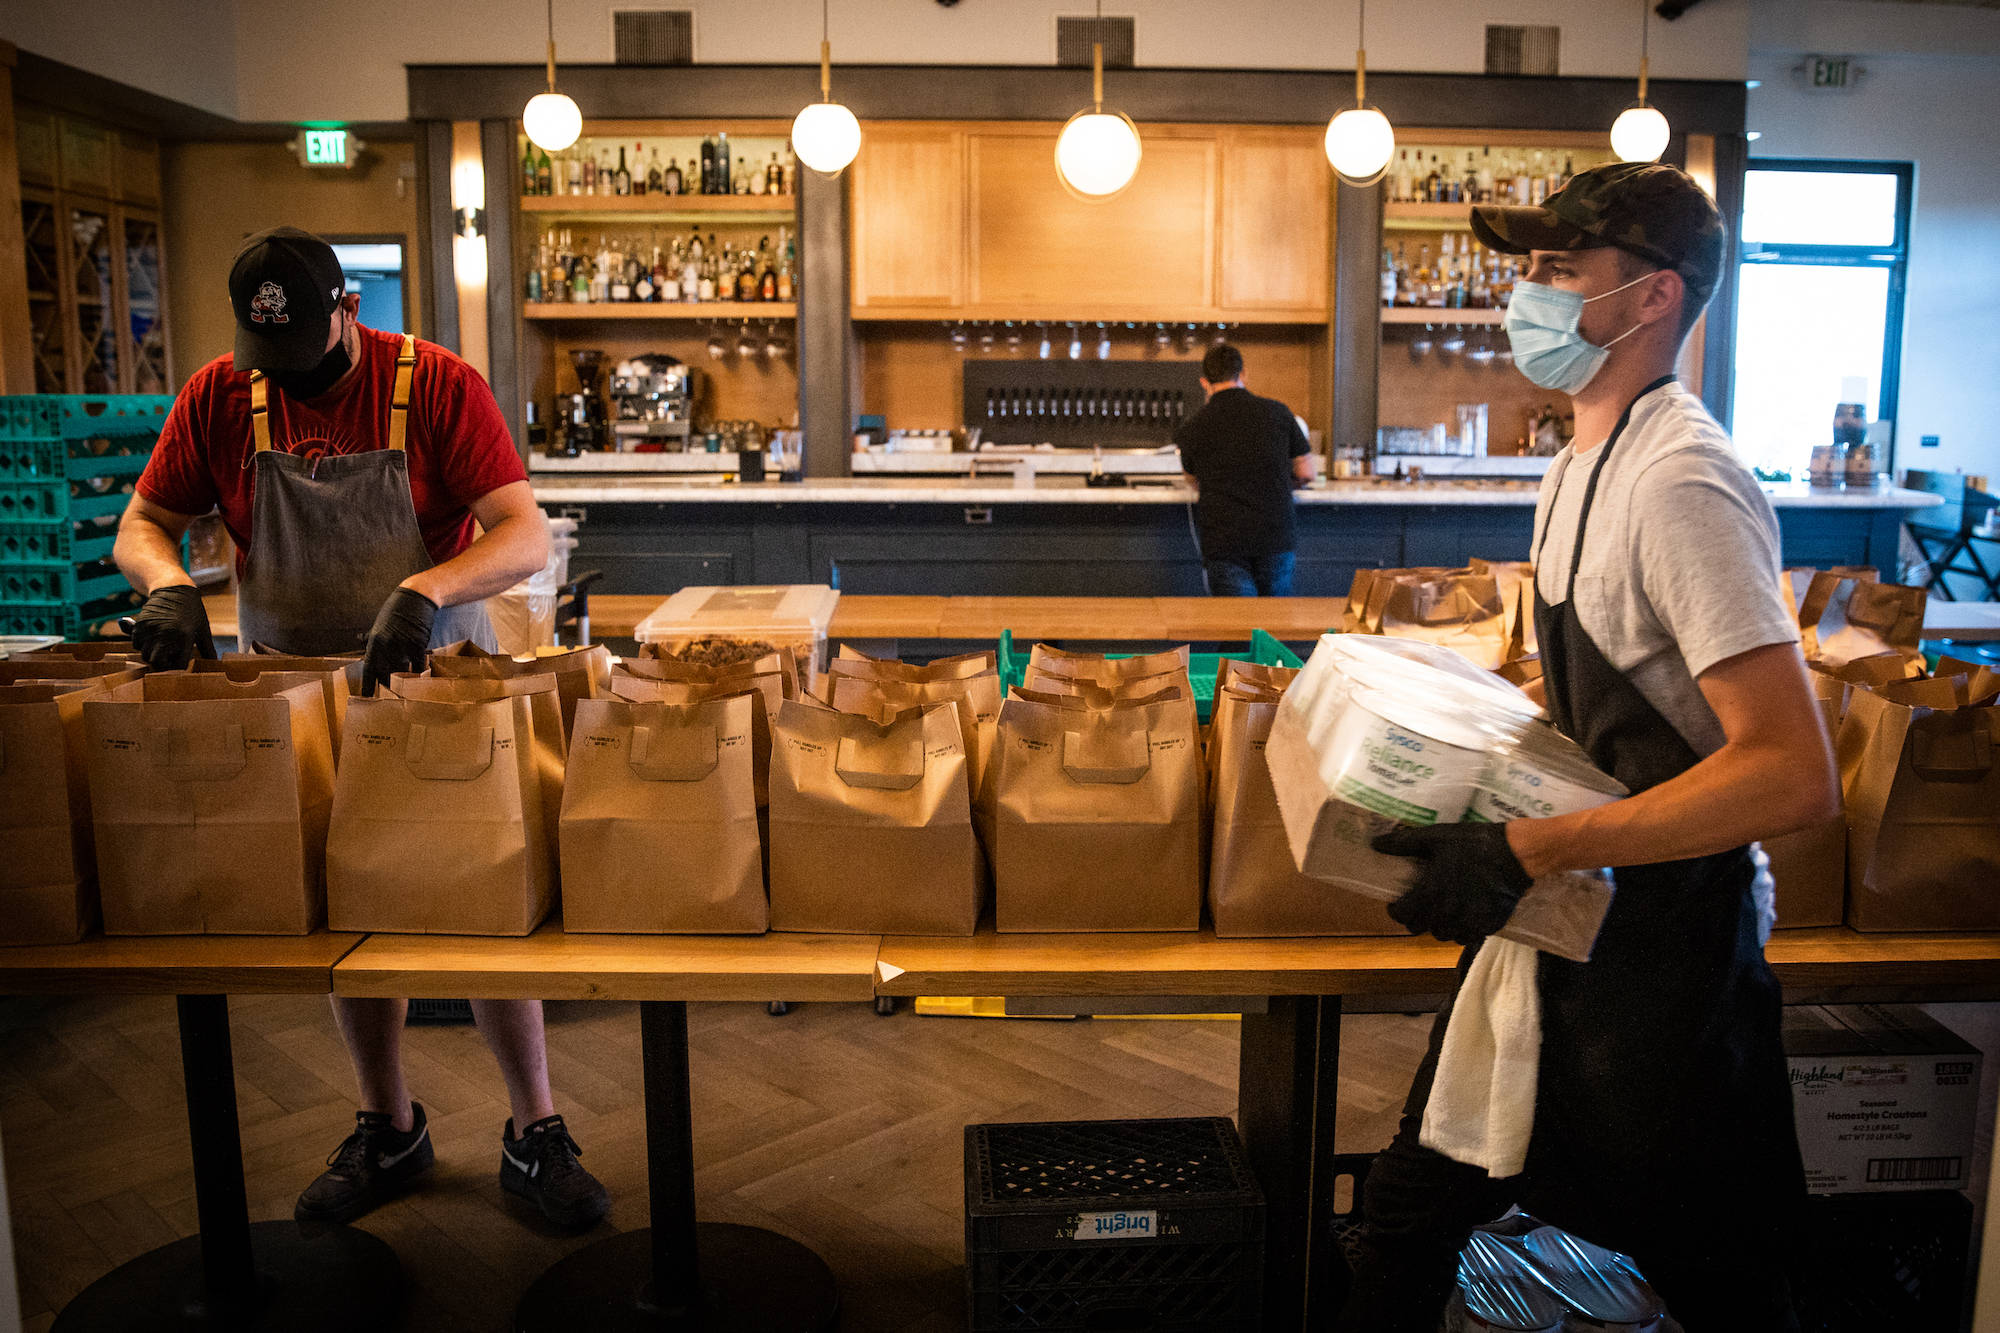 """Brad Cecchi, executive chef of Canon, left, and Bucky Bray pack up meals for the """"Family Meal"""" program at the restaurant in Sacramento, May 1, 2020. As part of the """"Family Meal"""" program, Canon is providing roughly 1400 meals per week for low income residents in the Sacramento area."""